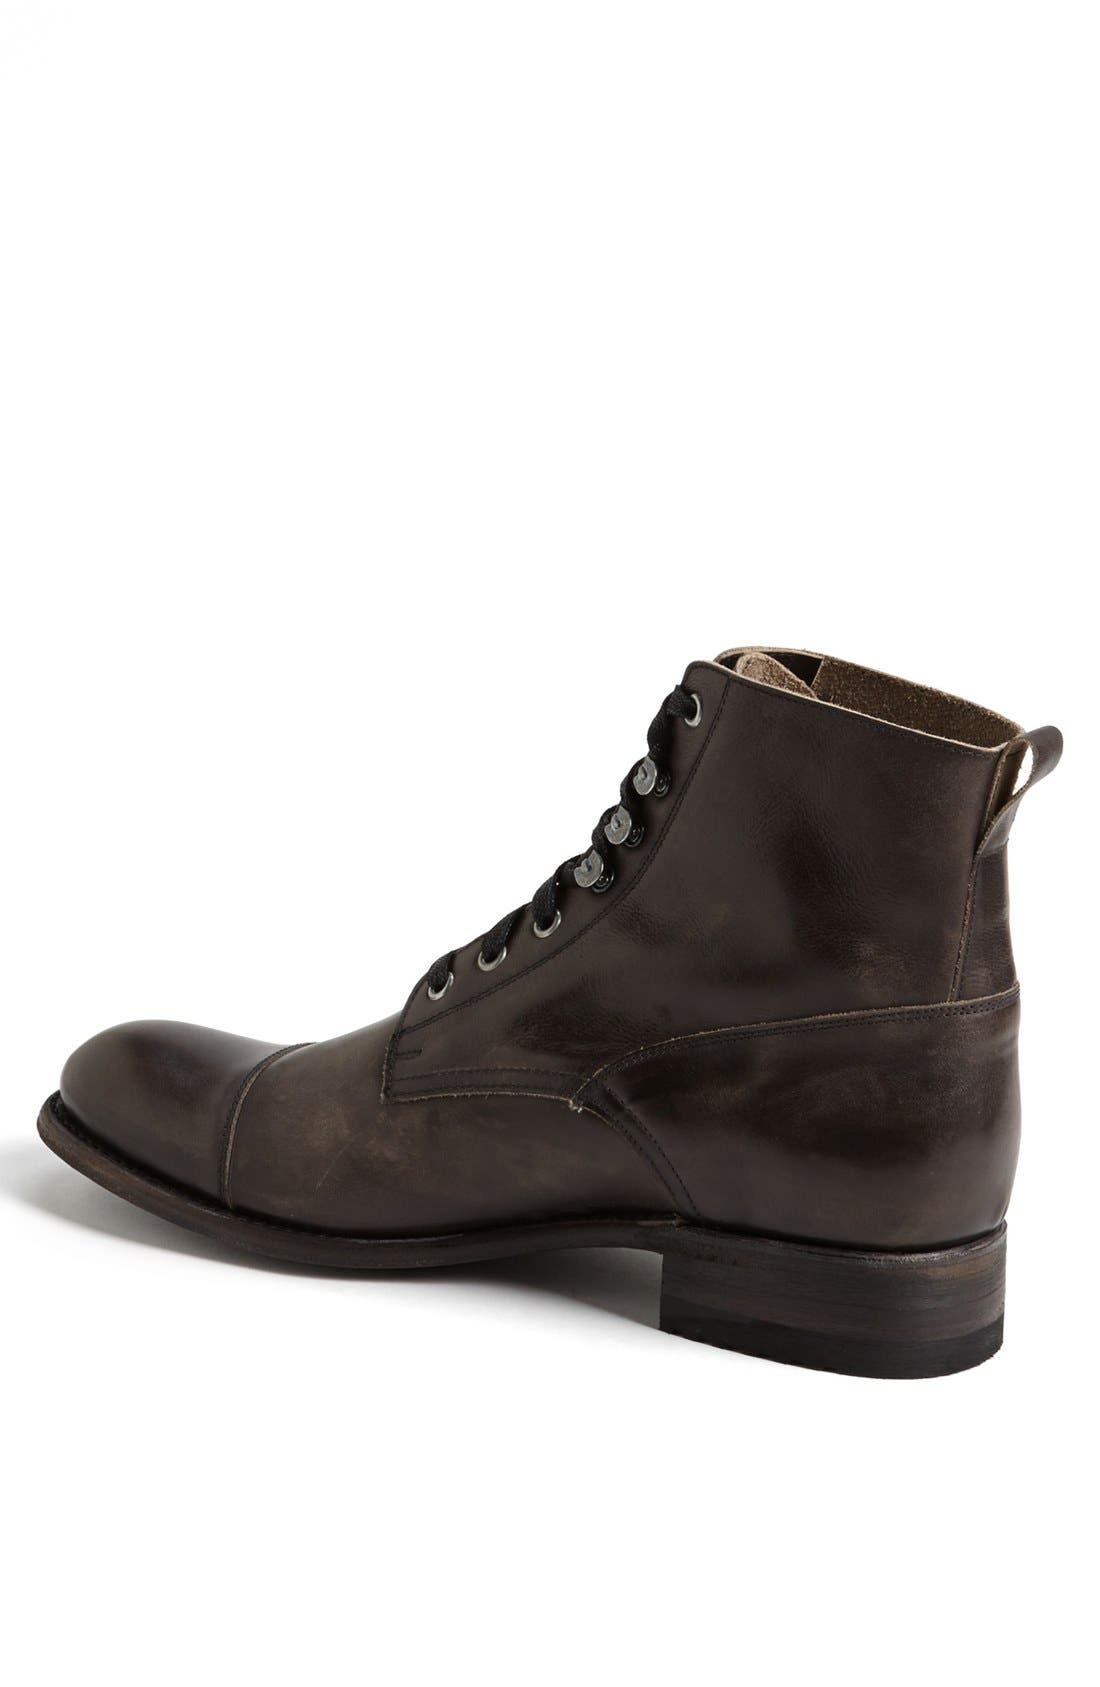 'Station' Cap Toe Boot,                             Alternate thumbnail 3, color,                             ANTRACITE LEATHER